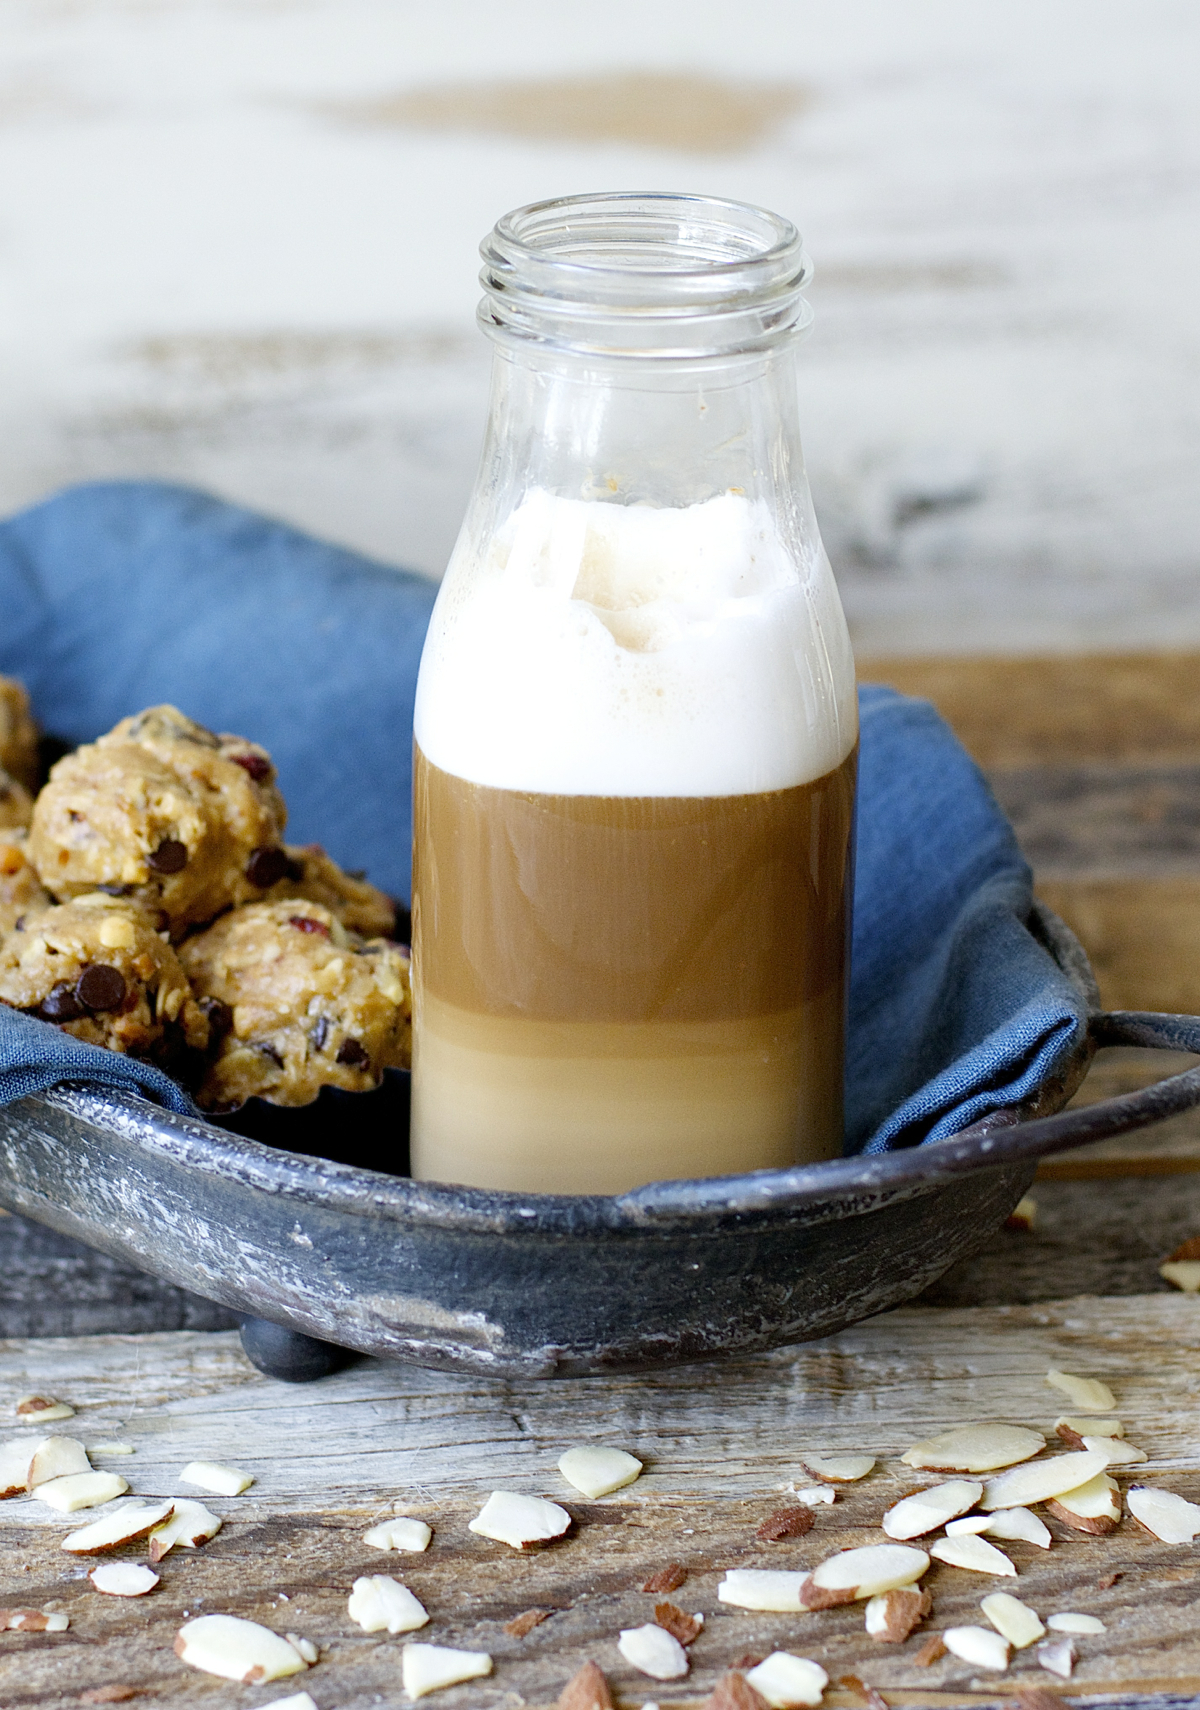 Creamy Vanilla Almond Butter is paired with warm frothy milk and espresso for a beautiful Almond Vanilla Latte!